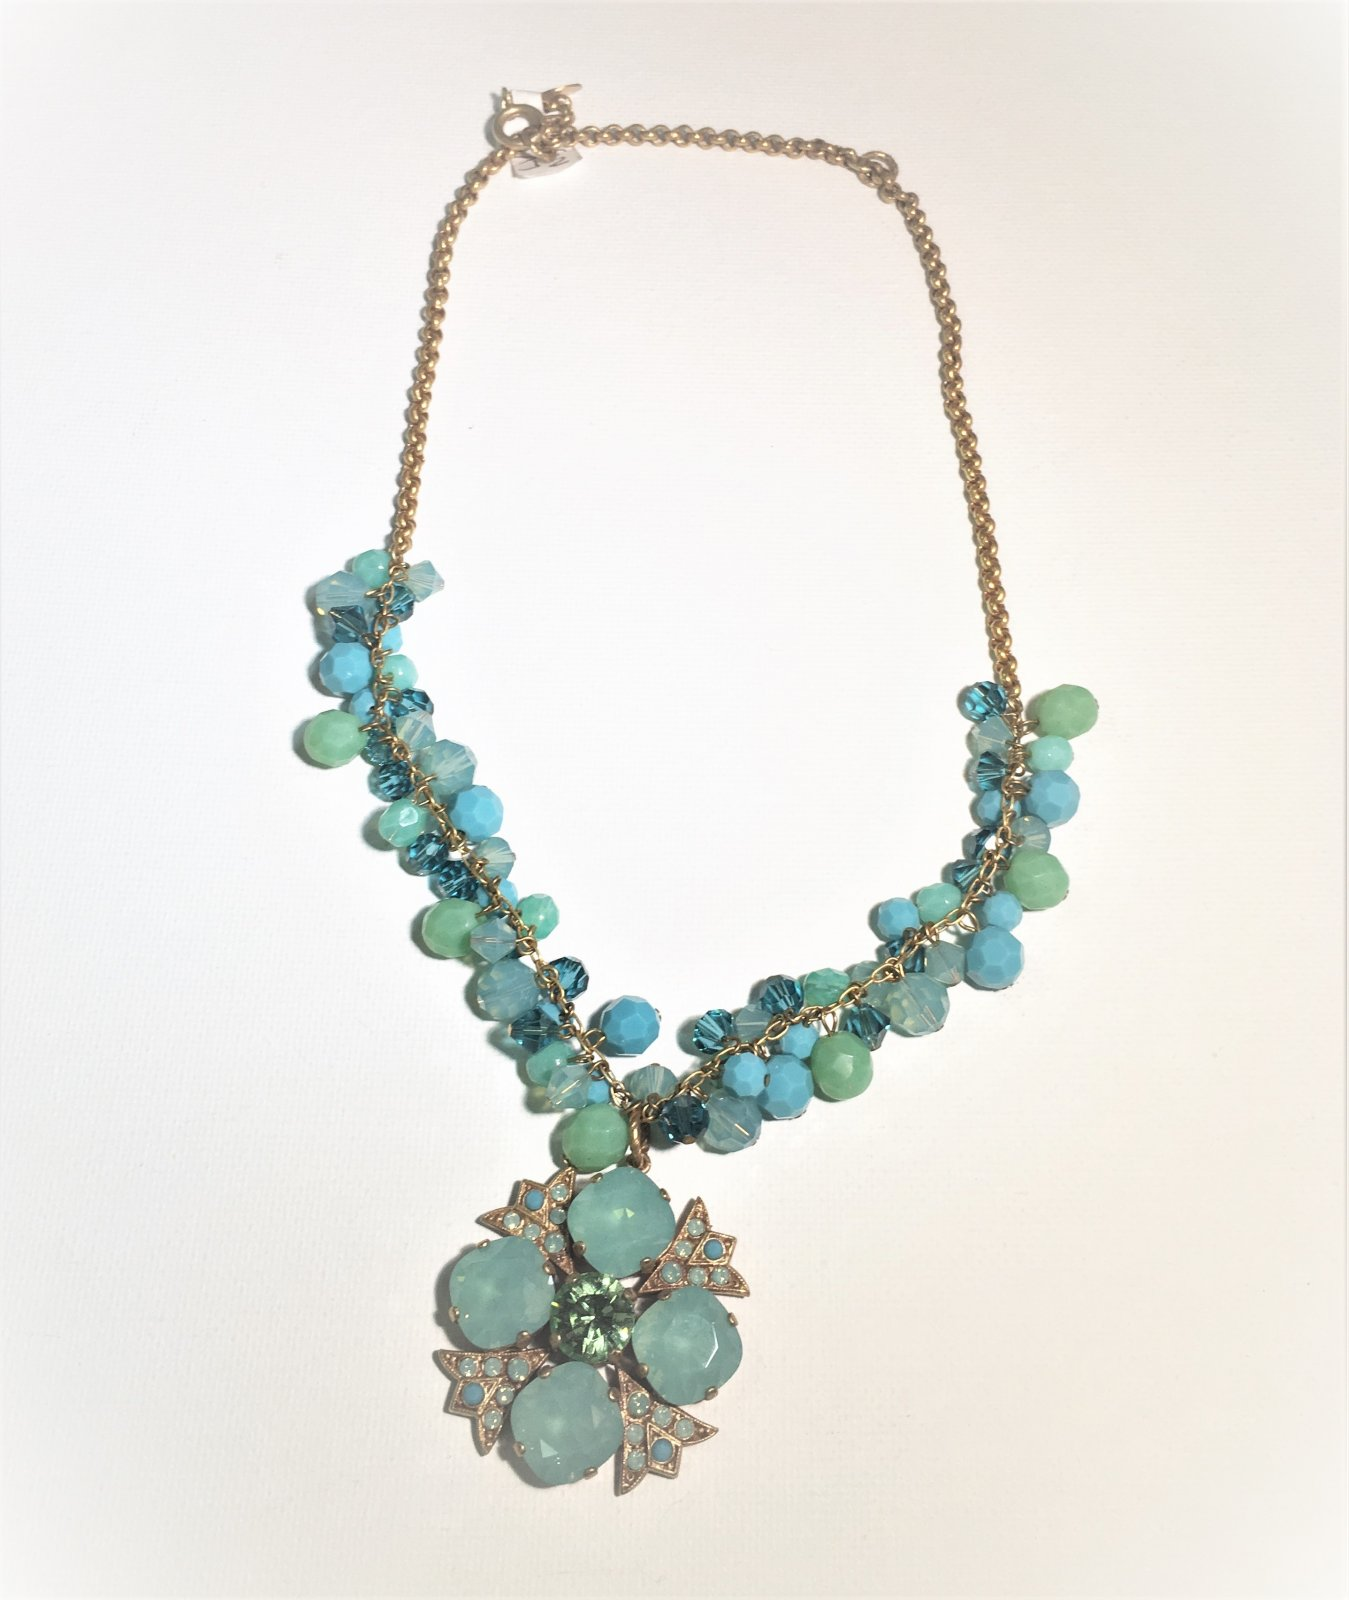 Gold Chain Necklace with Aqua Stones 0017